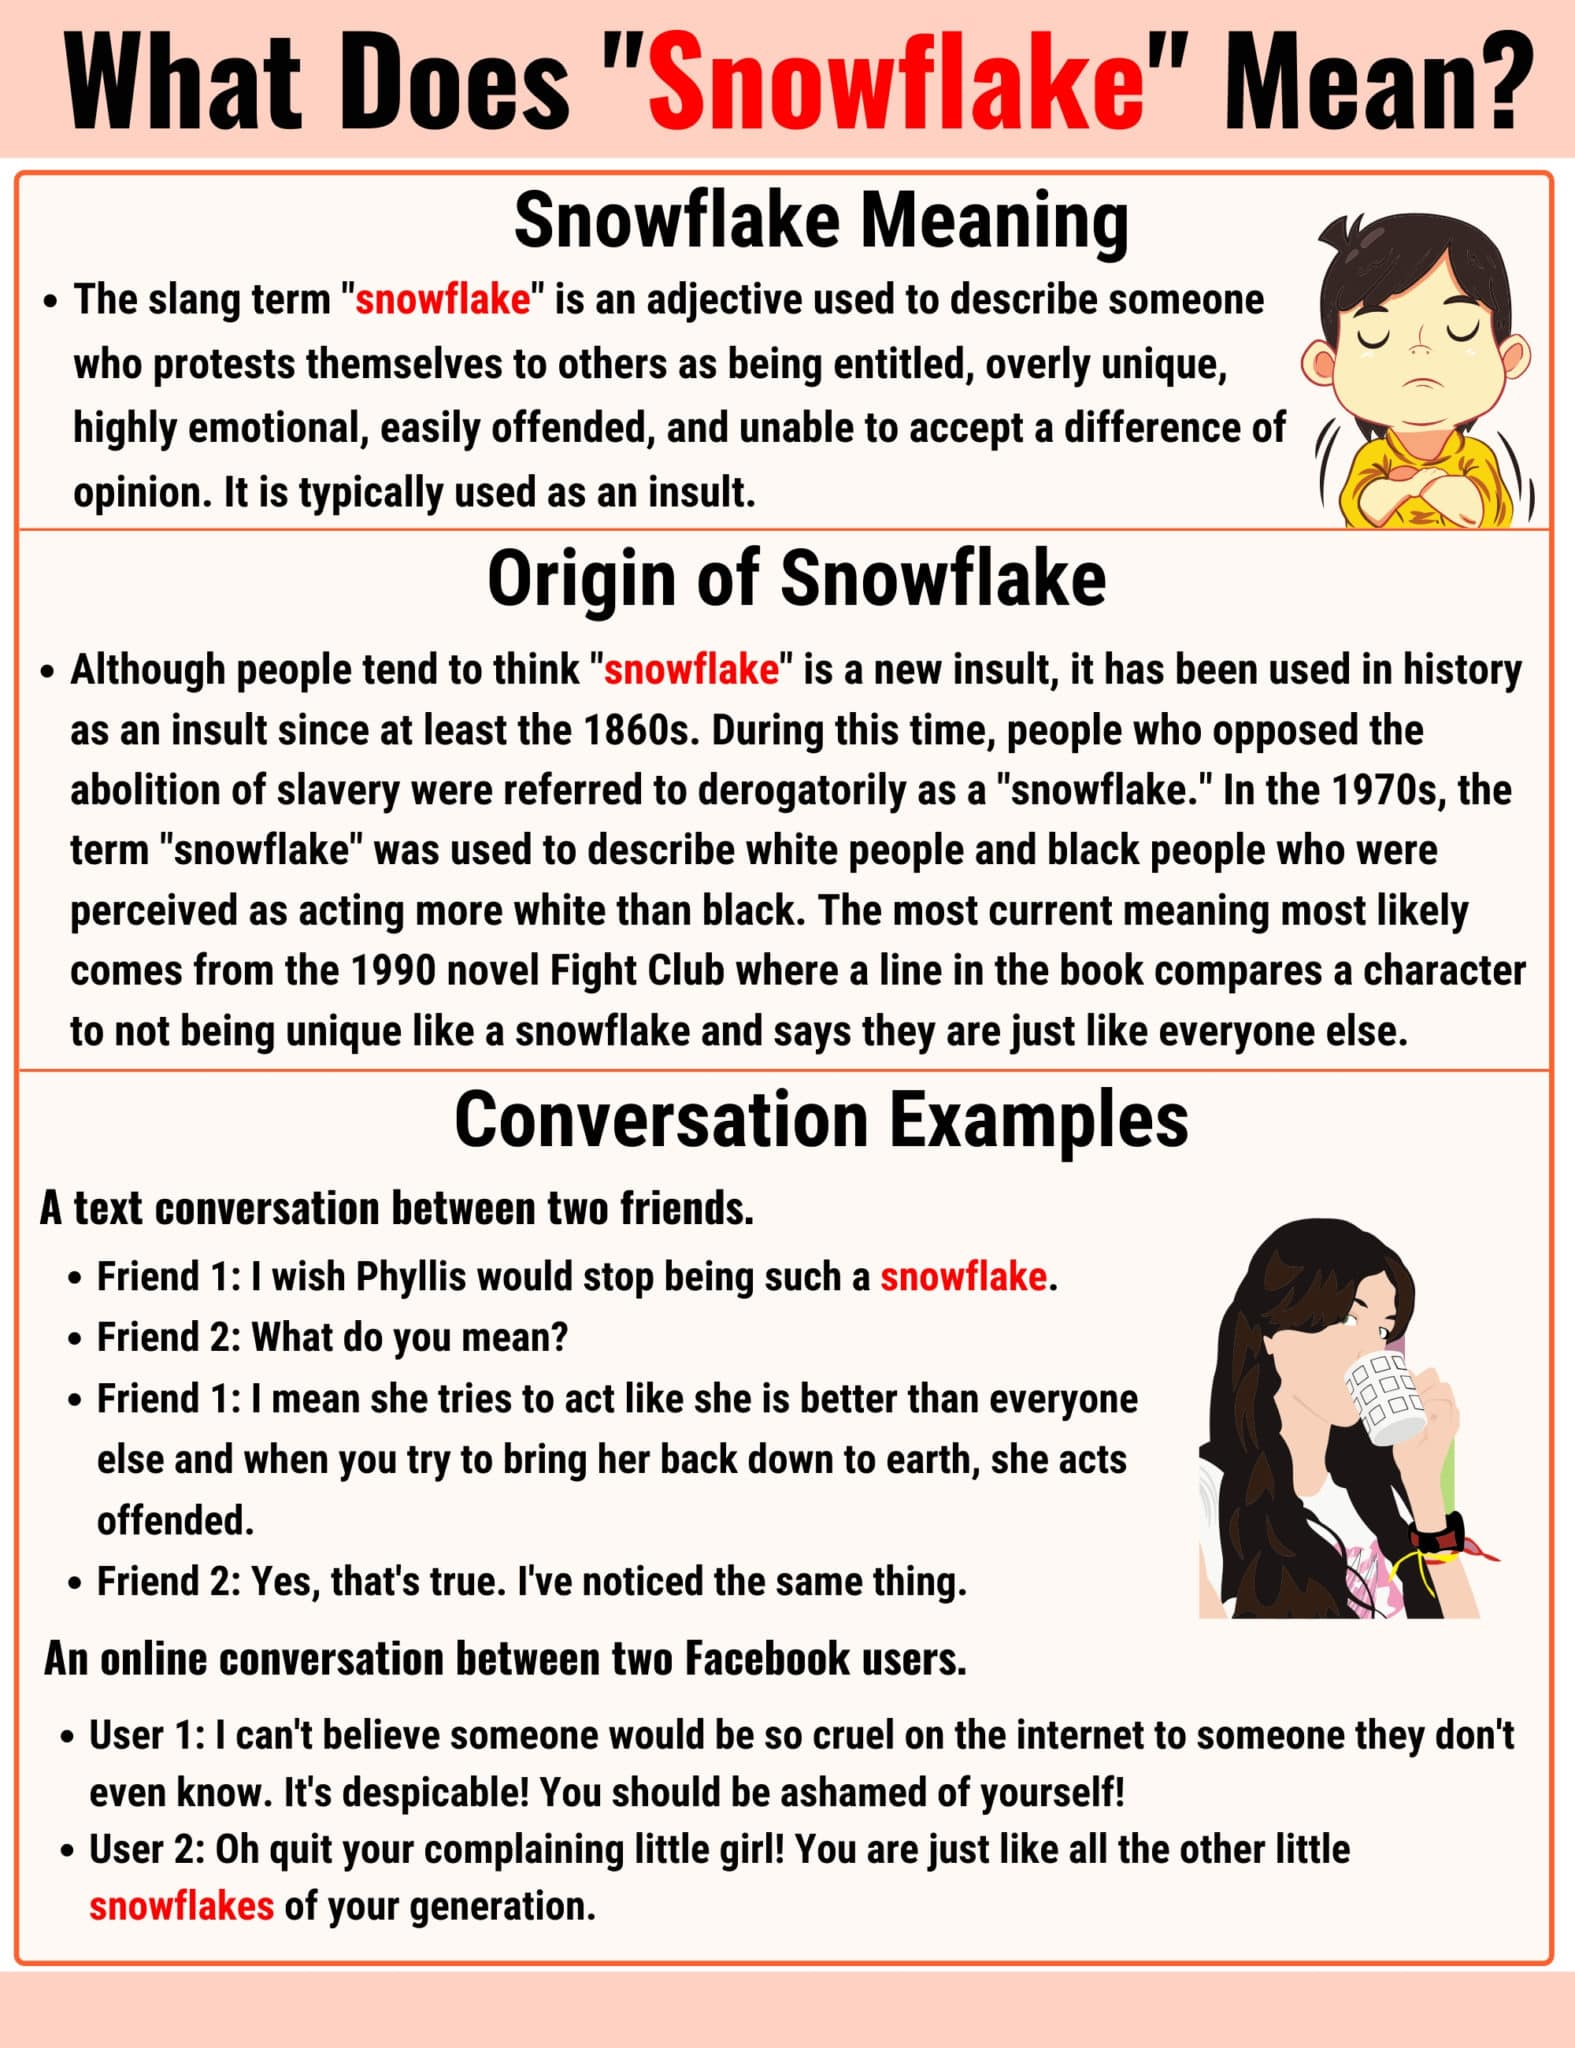 Snowflake Meaning: The Definition of the Useful Slang Term 'Snowflake'